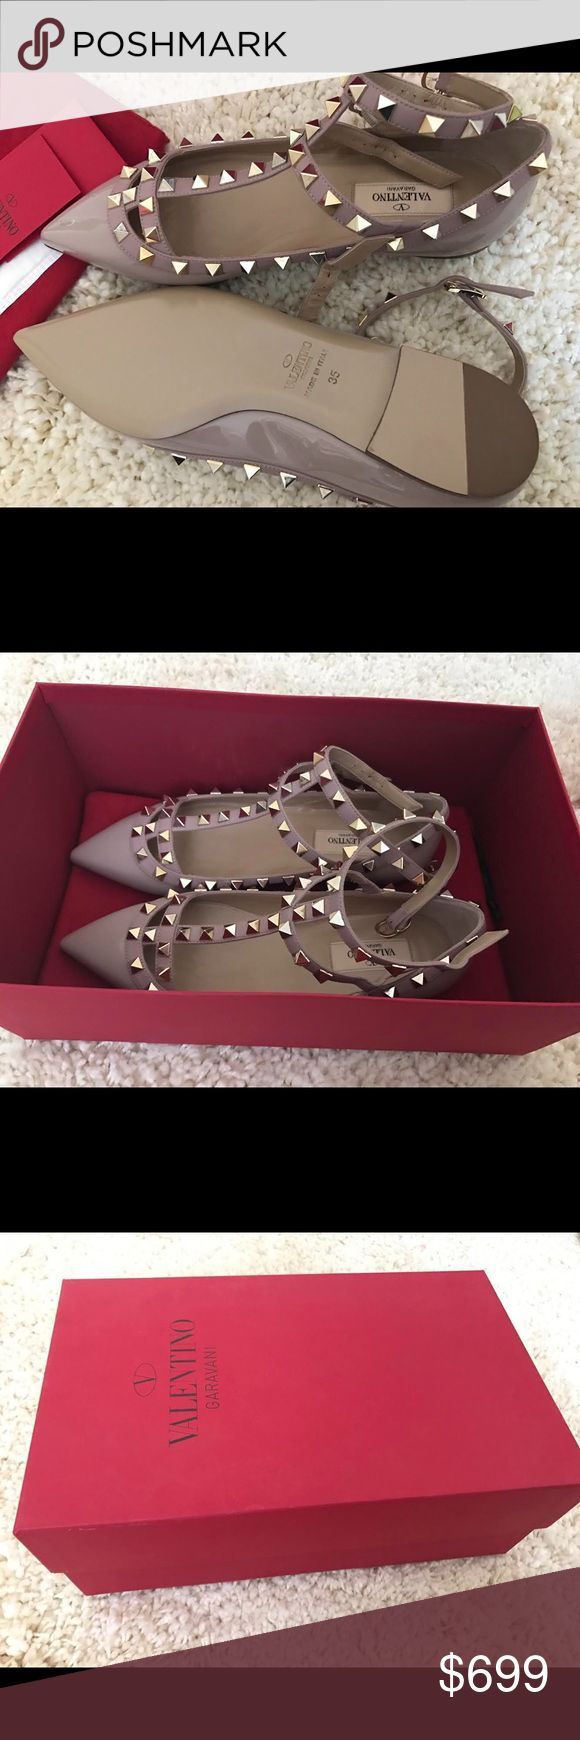 Valentino flats brand new, with original box Valentino flats .  brand new !!!!!!            with box original price was 975+tax  100% authentic. size35. Valentino Shoes Flats & Loafers